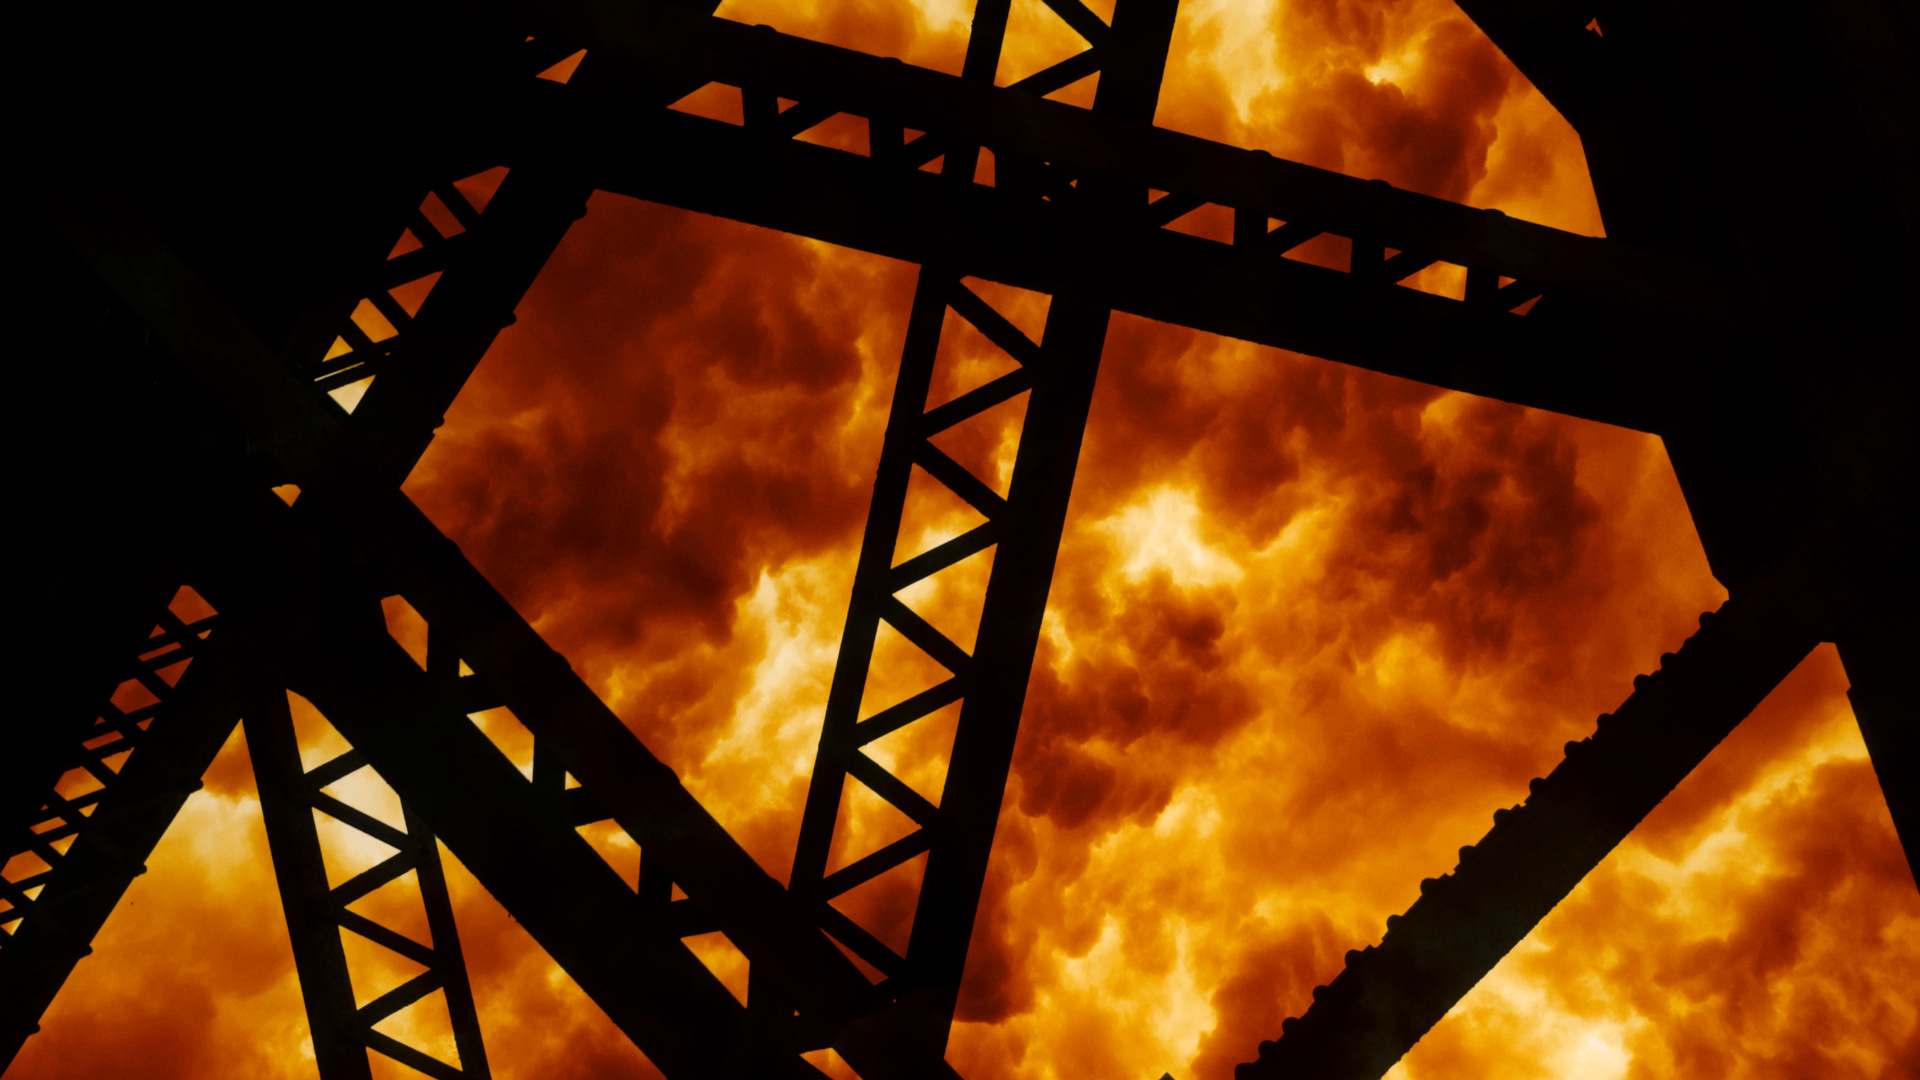 steel structures on fire